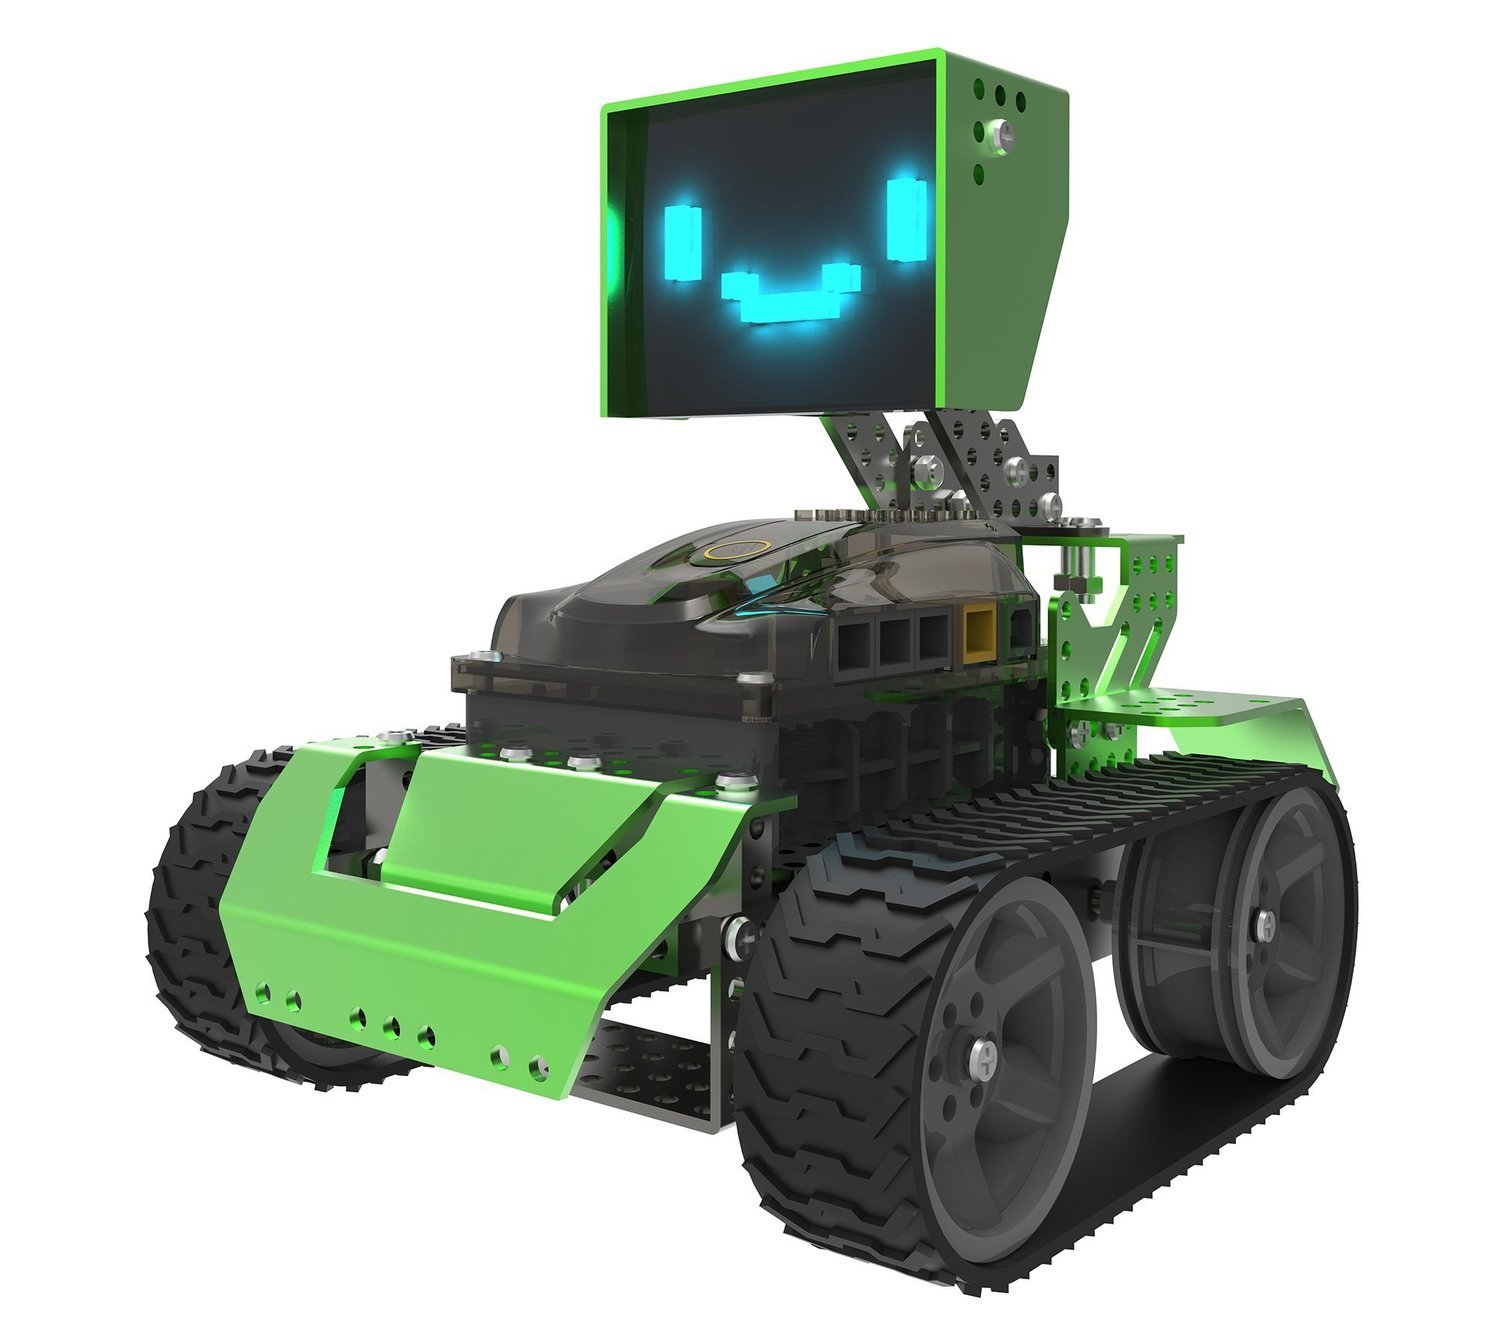 6-in-1 Transformable Robot Kit